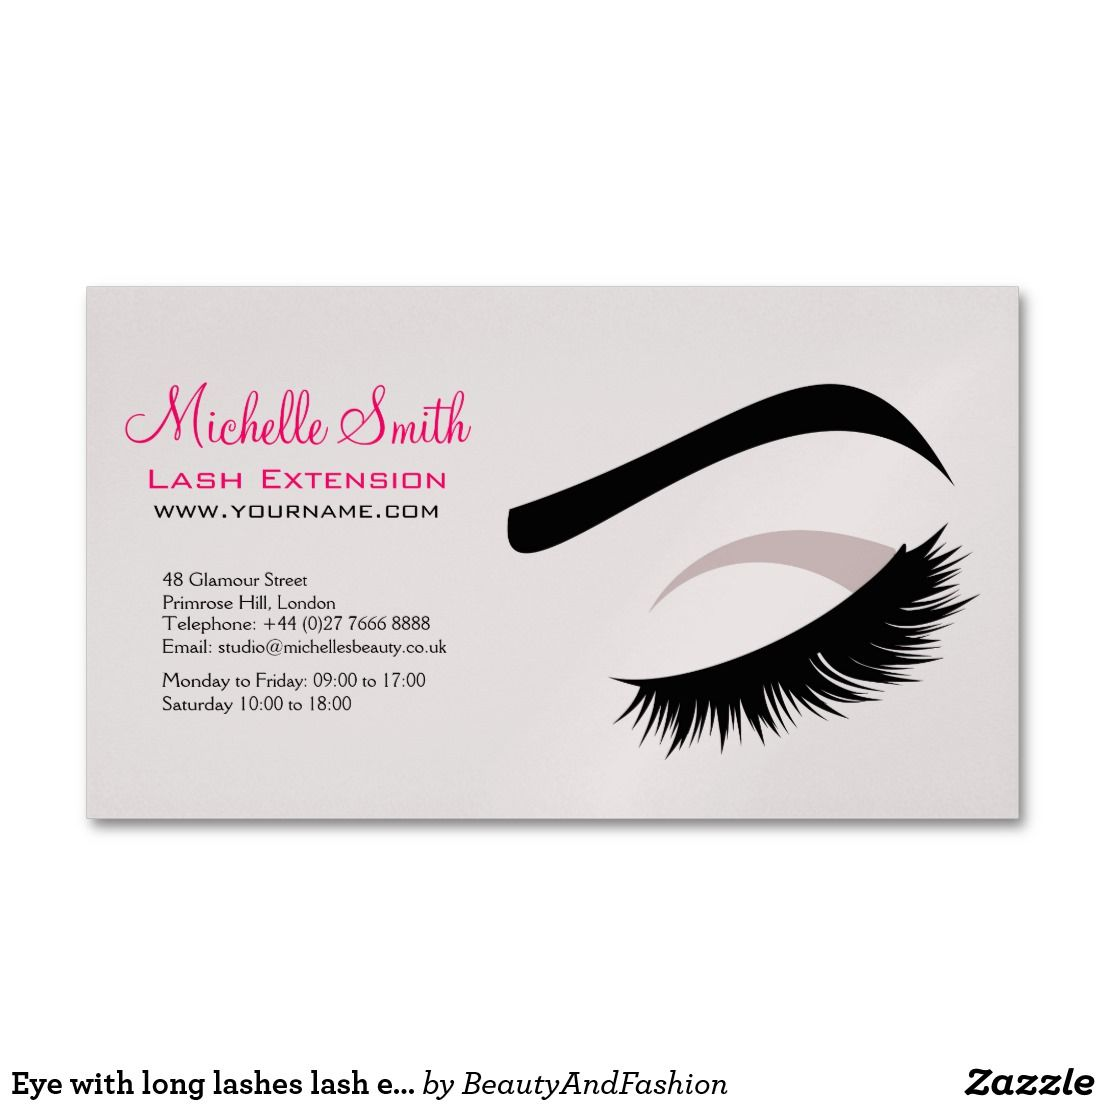 Eye with long lashes lash extension branding